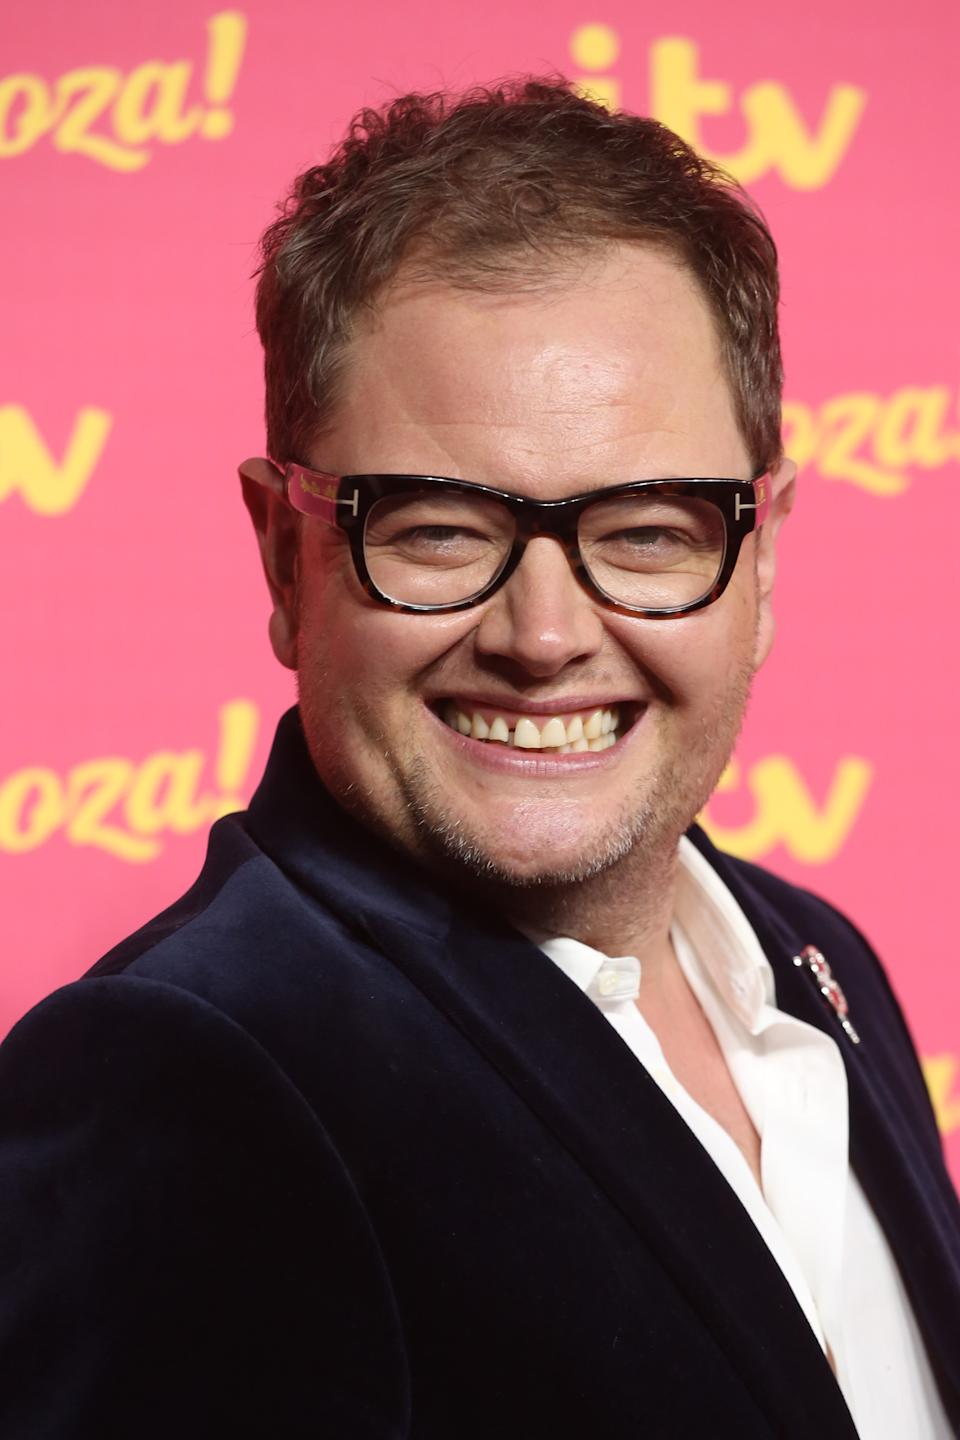 Alan Carr decided to sell his car on after getting it back once it was stolen. (Photo by Lia Toby/Getty Images)